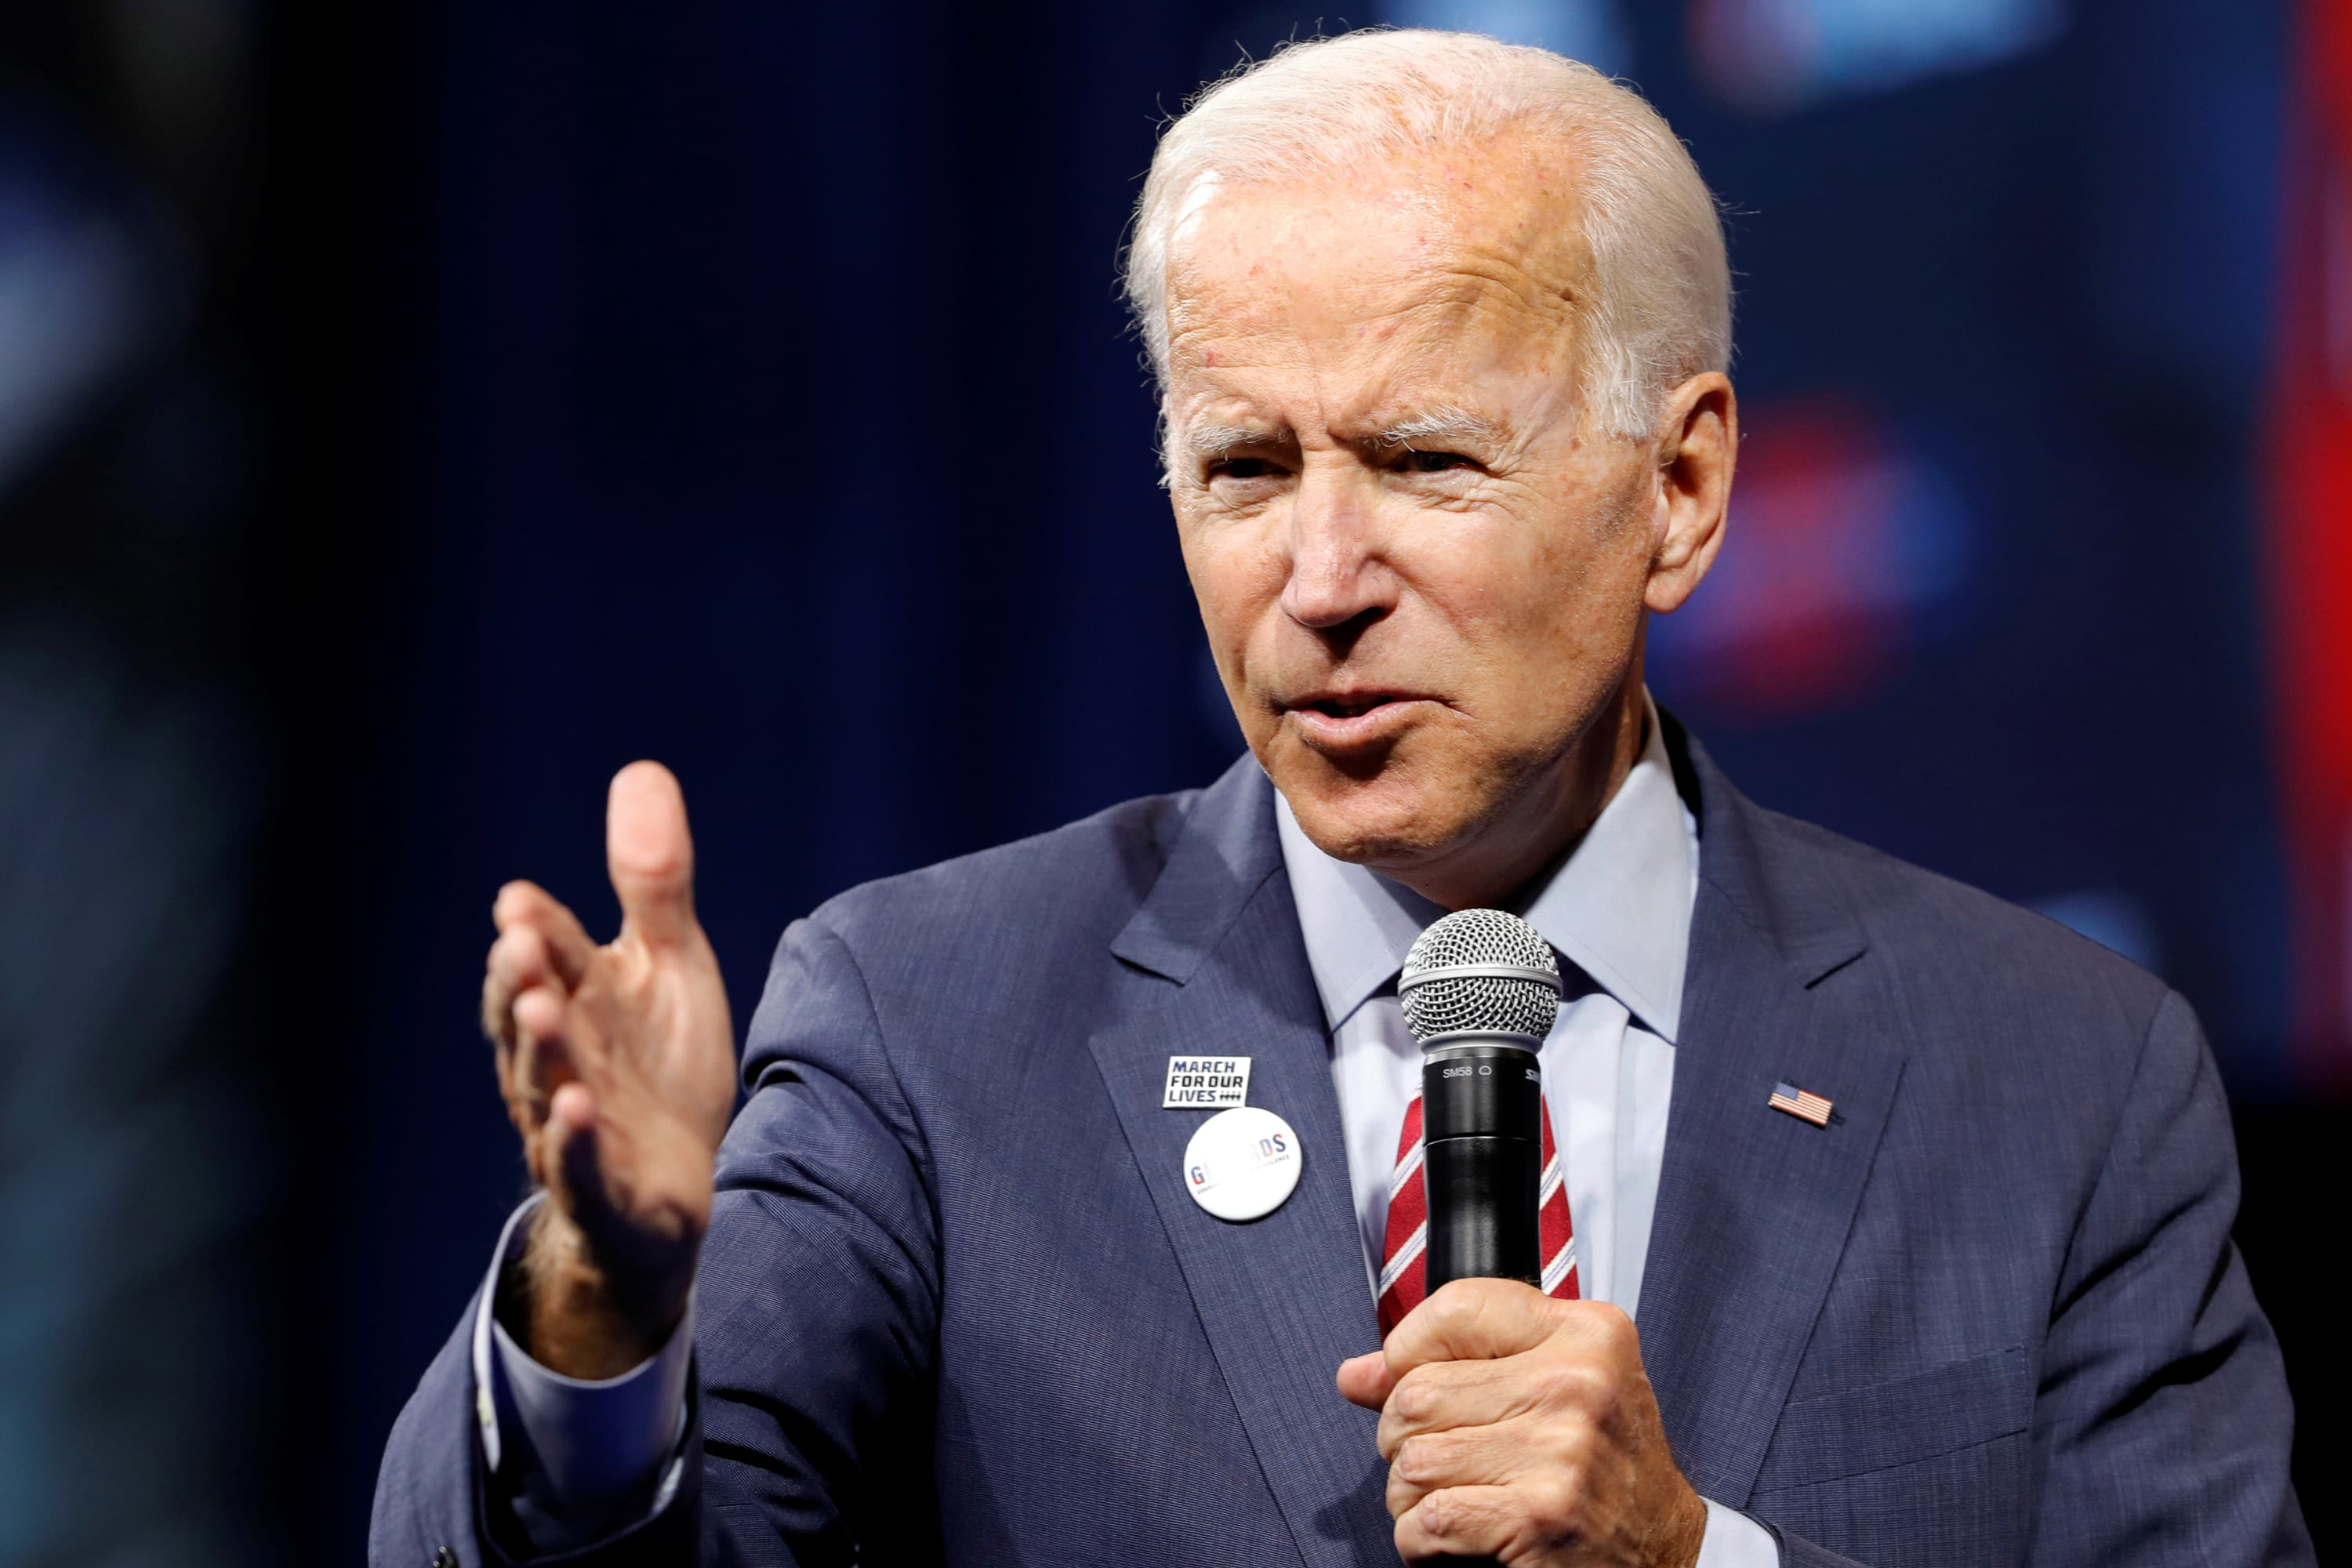 Joe Biden acknowledges 'pain' caused by Obama deportations as he unveils immigration plan